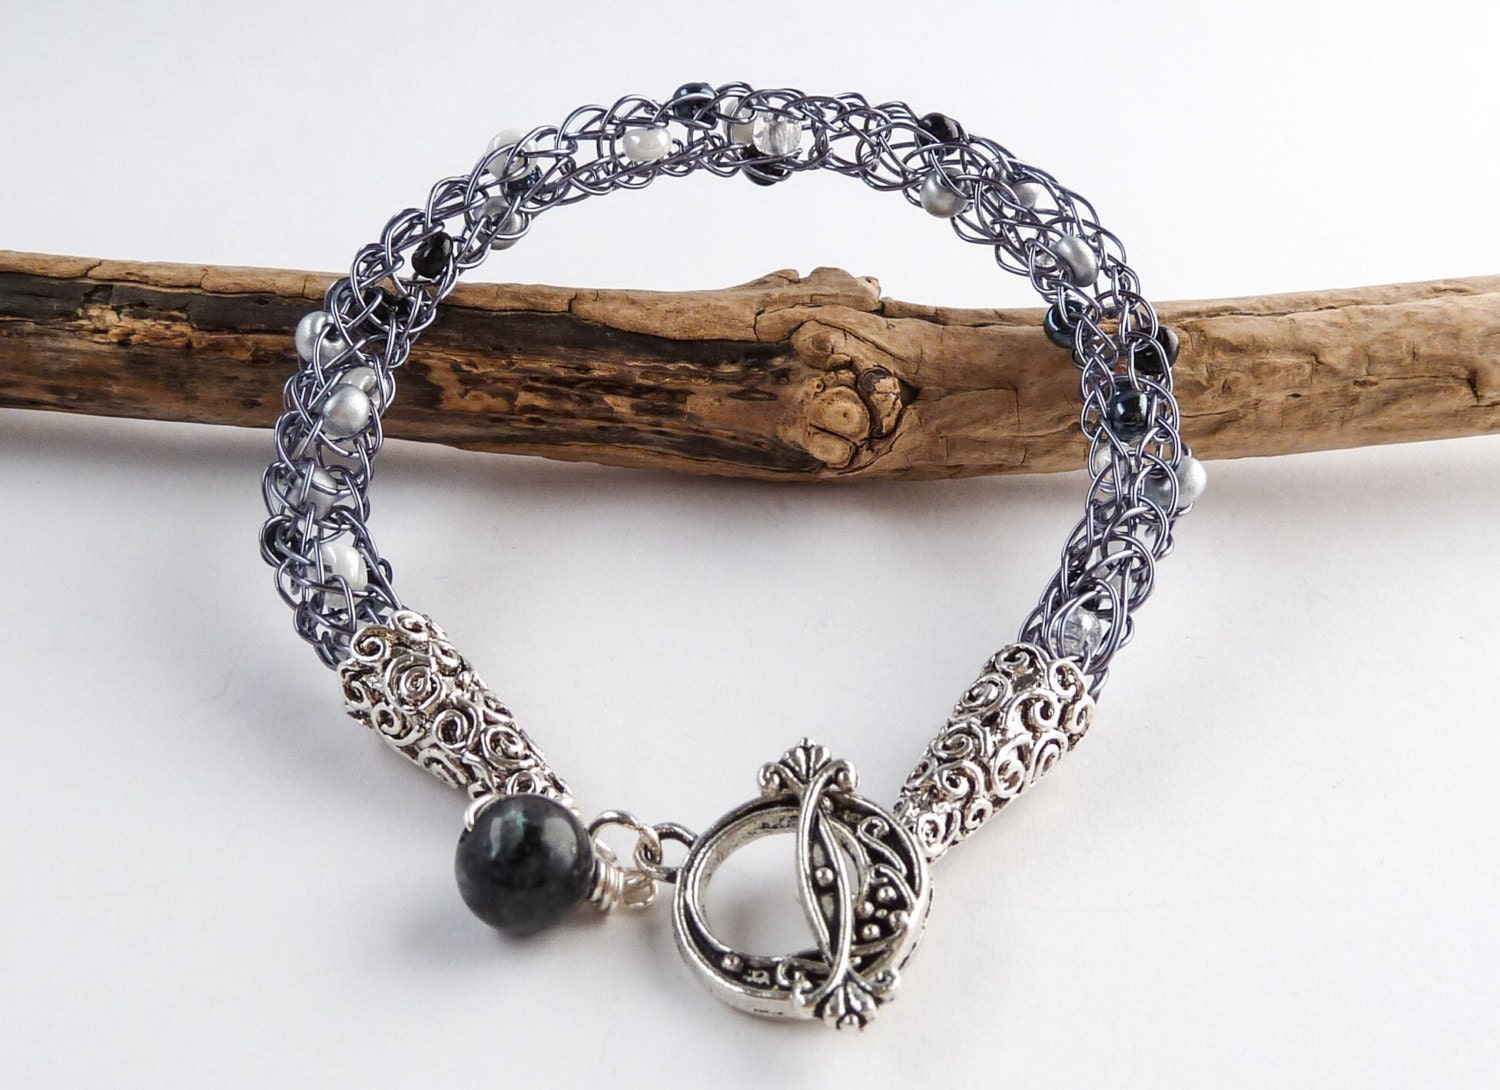 Viking Knit Jewelry Patterns : Viking Weave Beaded Bracelet Viking Knit by BeauBellaJewellery